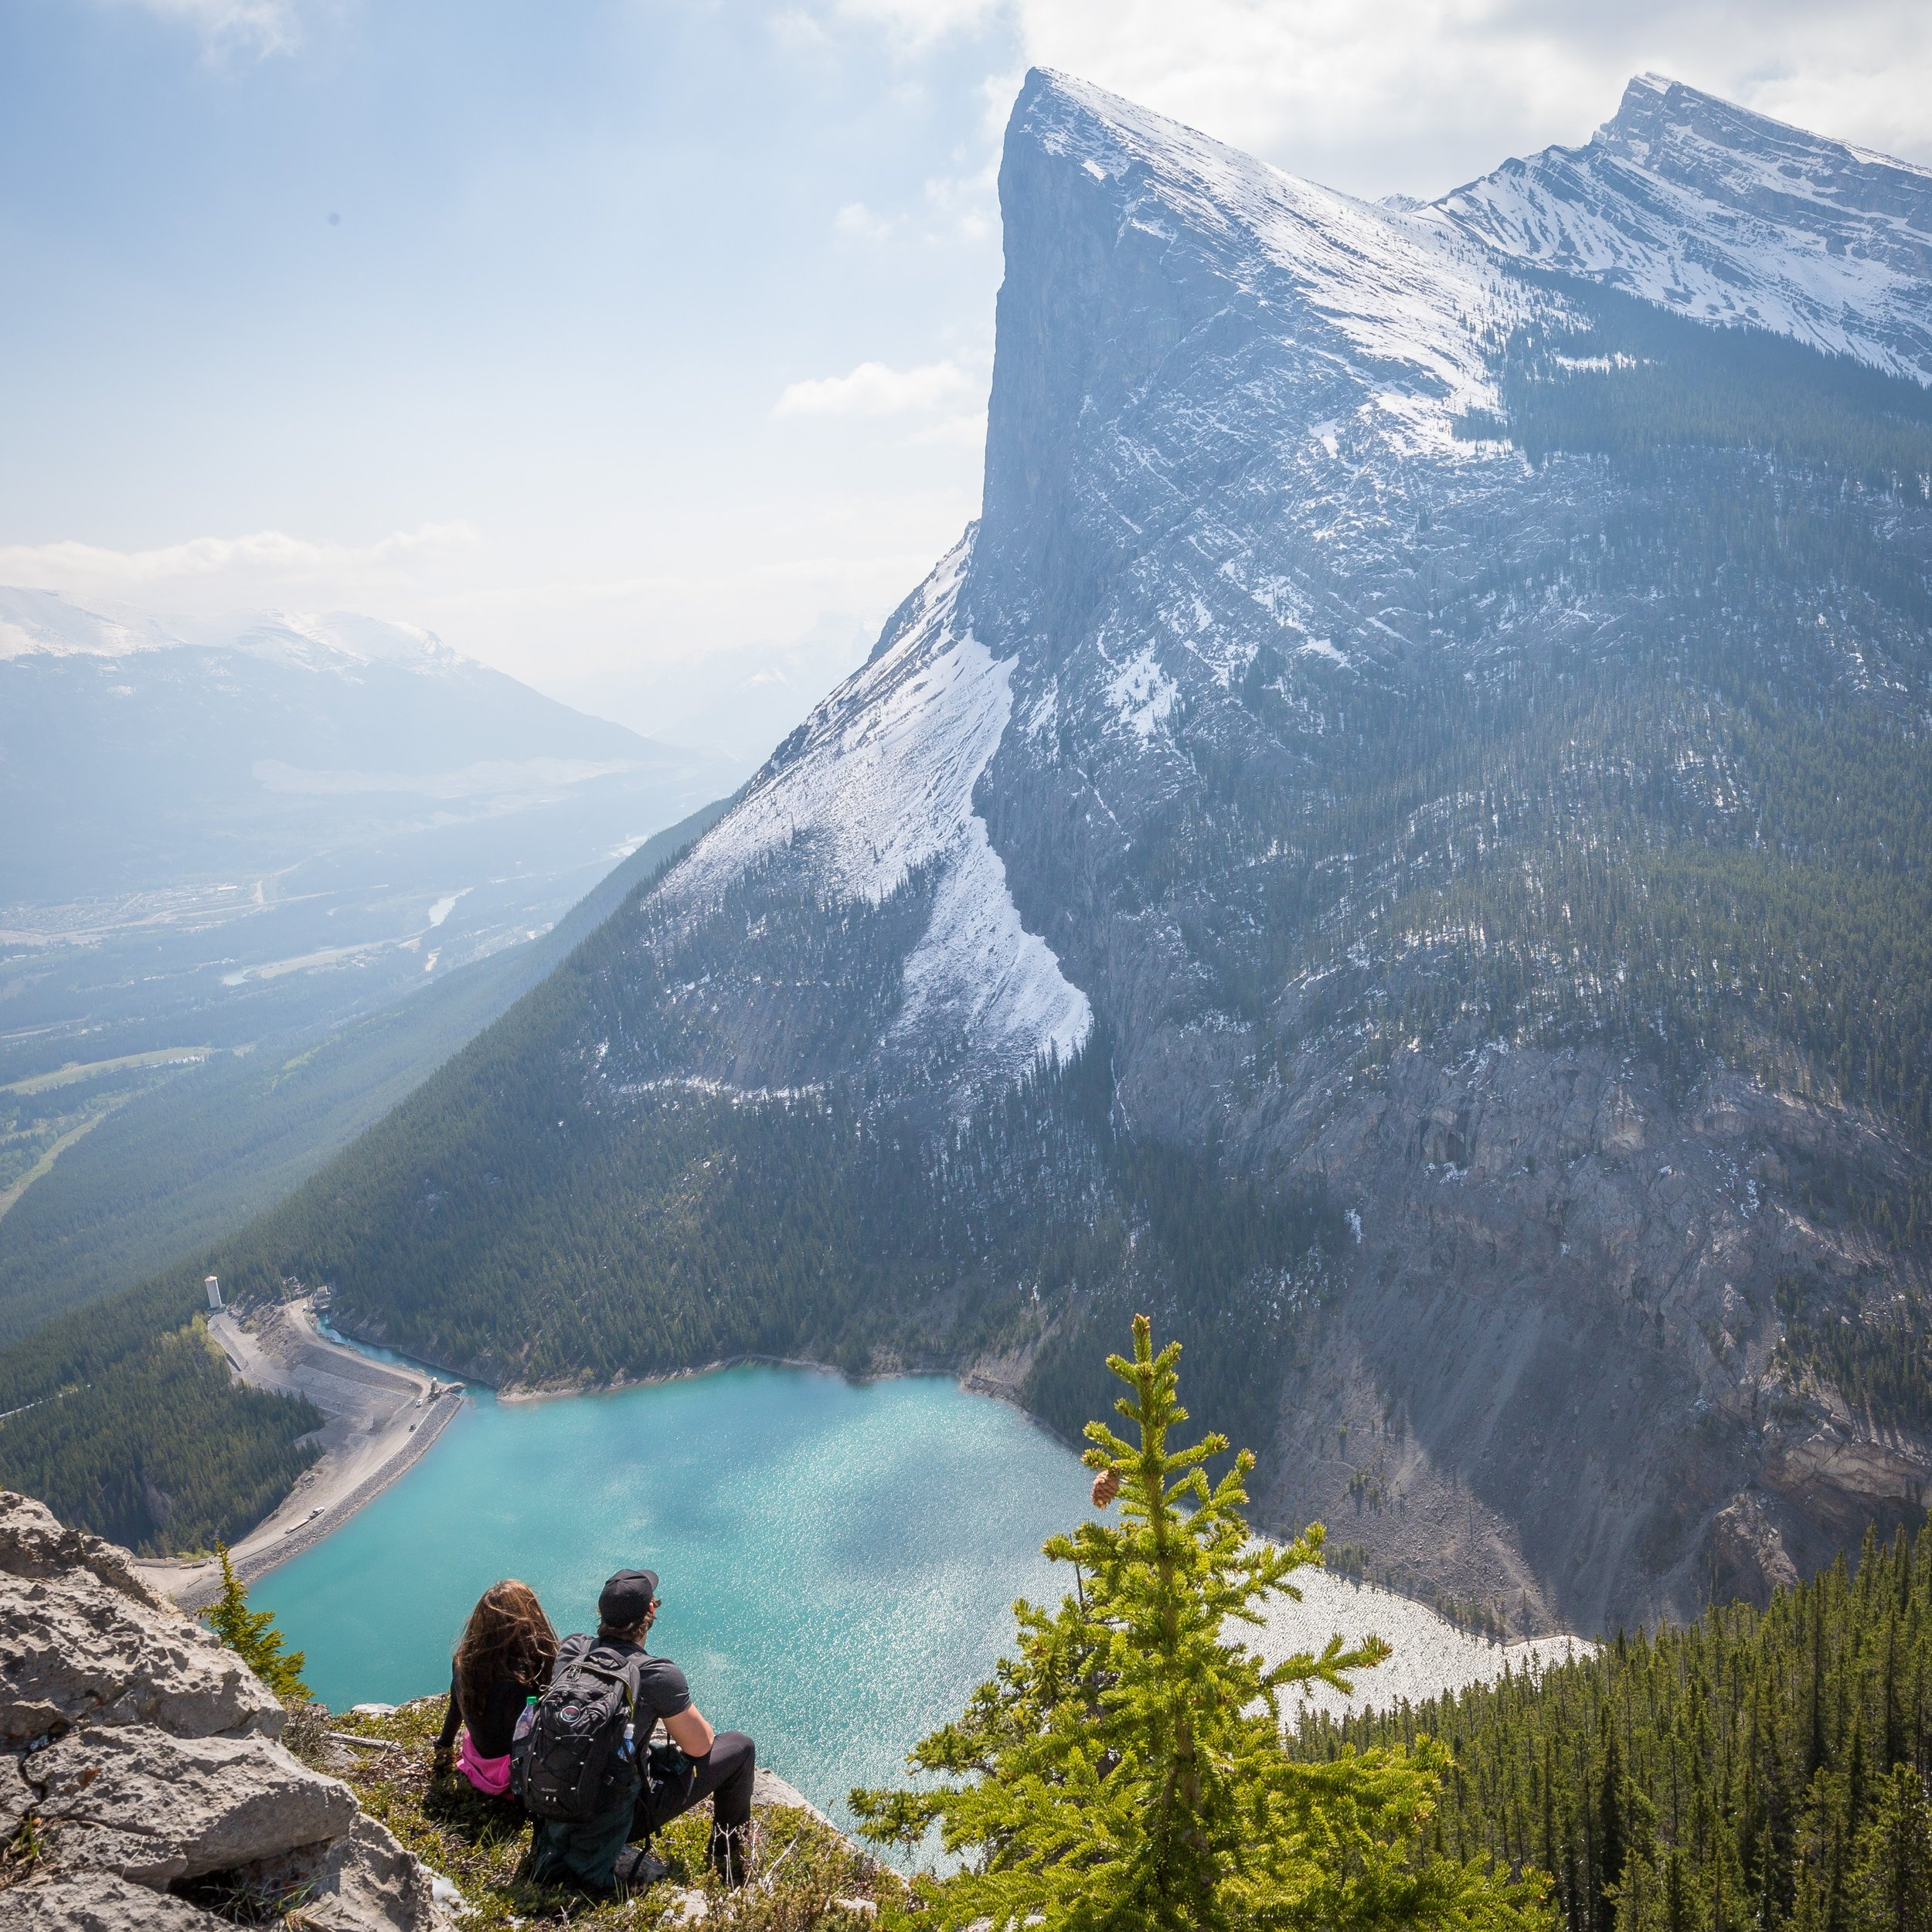 two hikers sit on the edge of a mountain overlooking a beautiful glacier lake